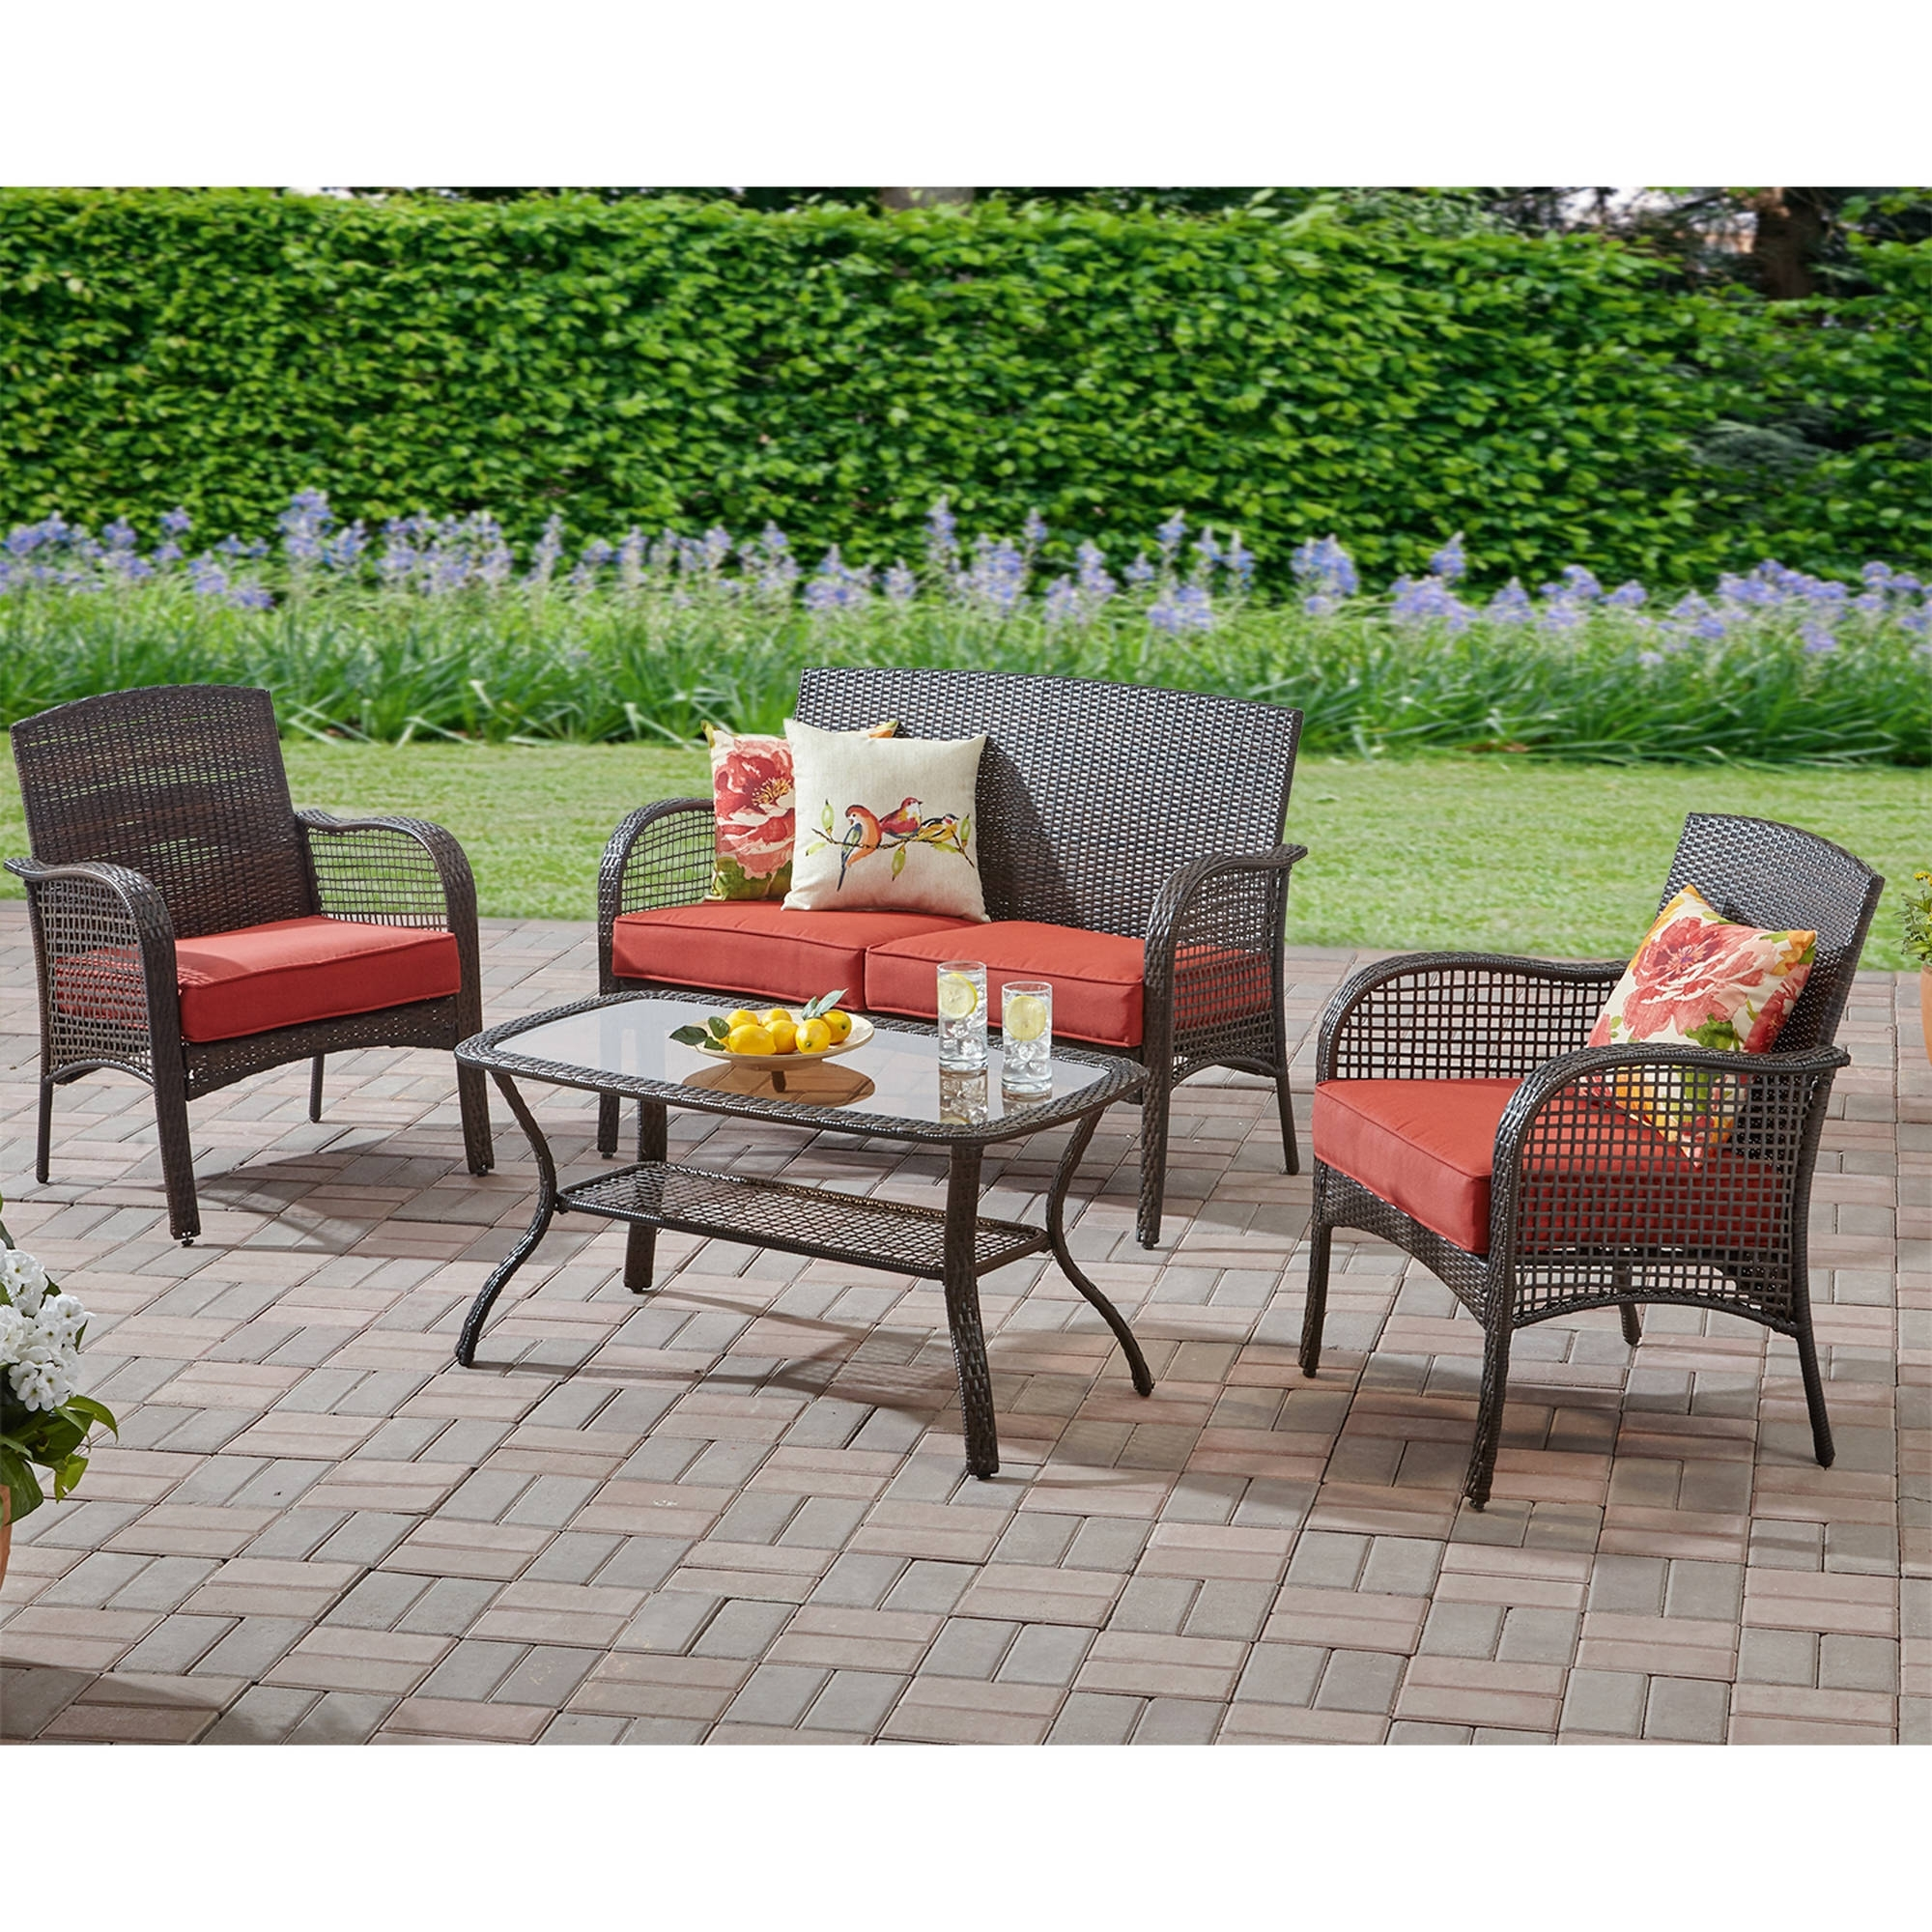 Resin Conversation Patio Sets With Regard To Most Up To Date Mainstays Cambridge Park 4 Piece Outdoor Conversation Set, Seats (View 2 of 20)